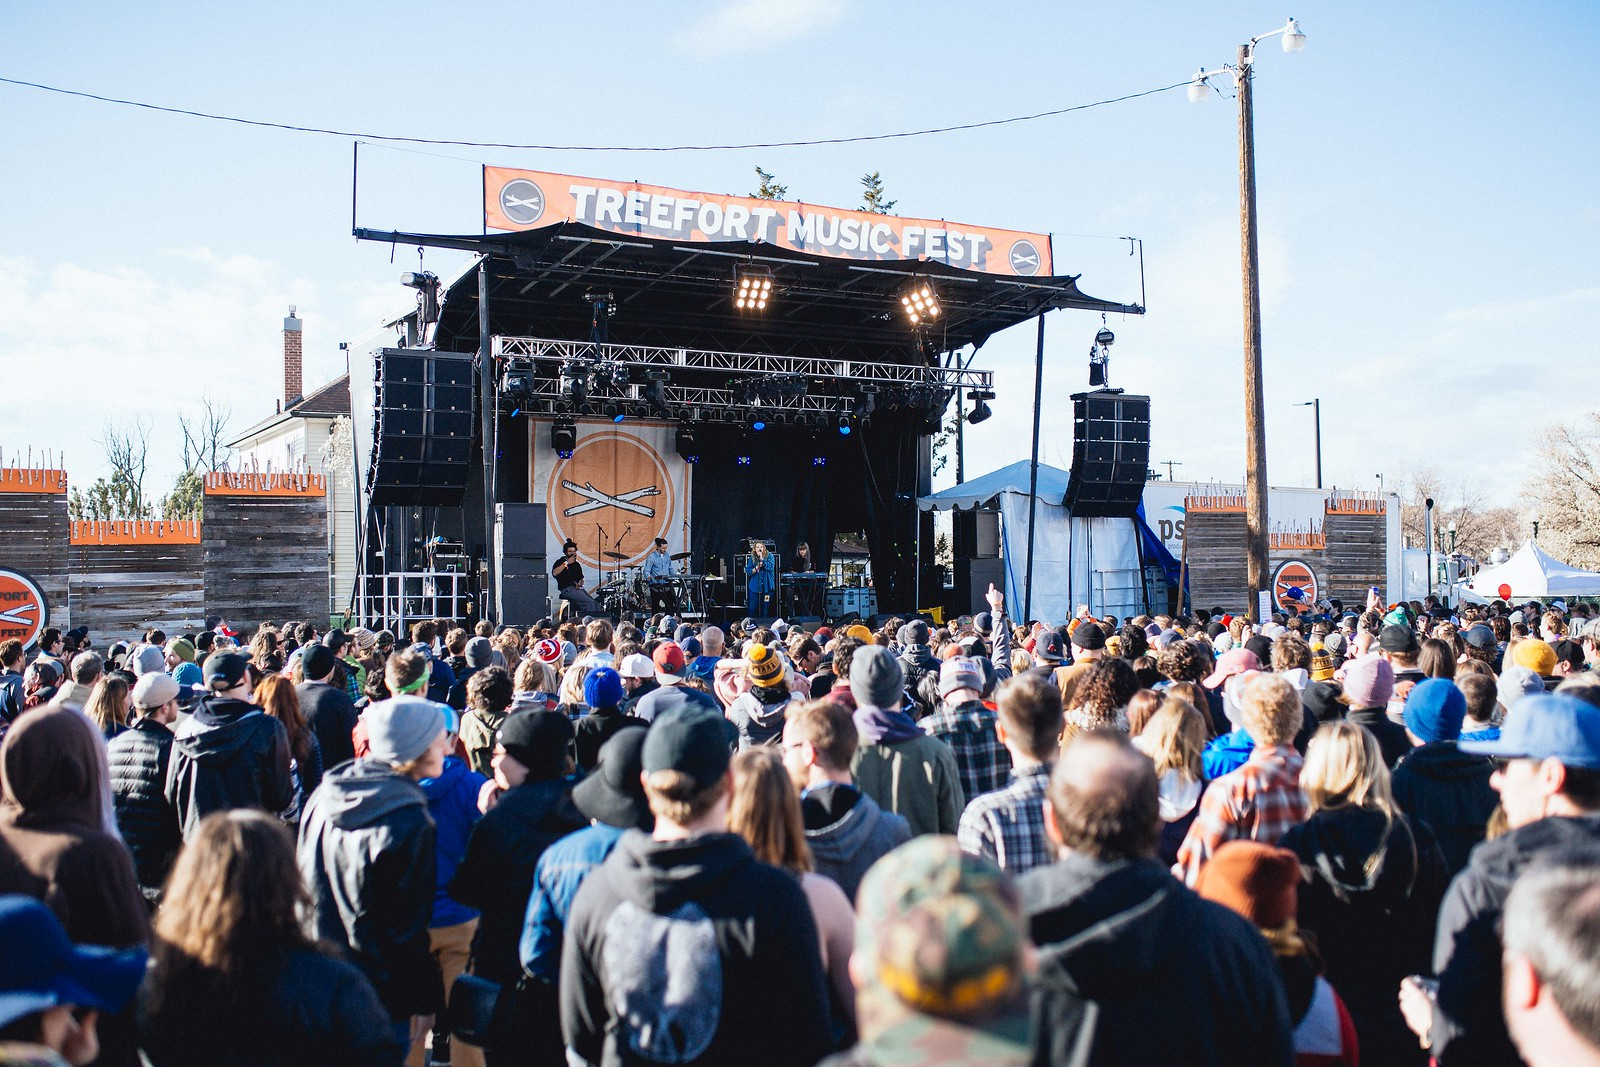 Kate Tempest performs at Treefort Music Fest 2019 © Matthew Wordell